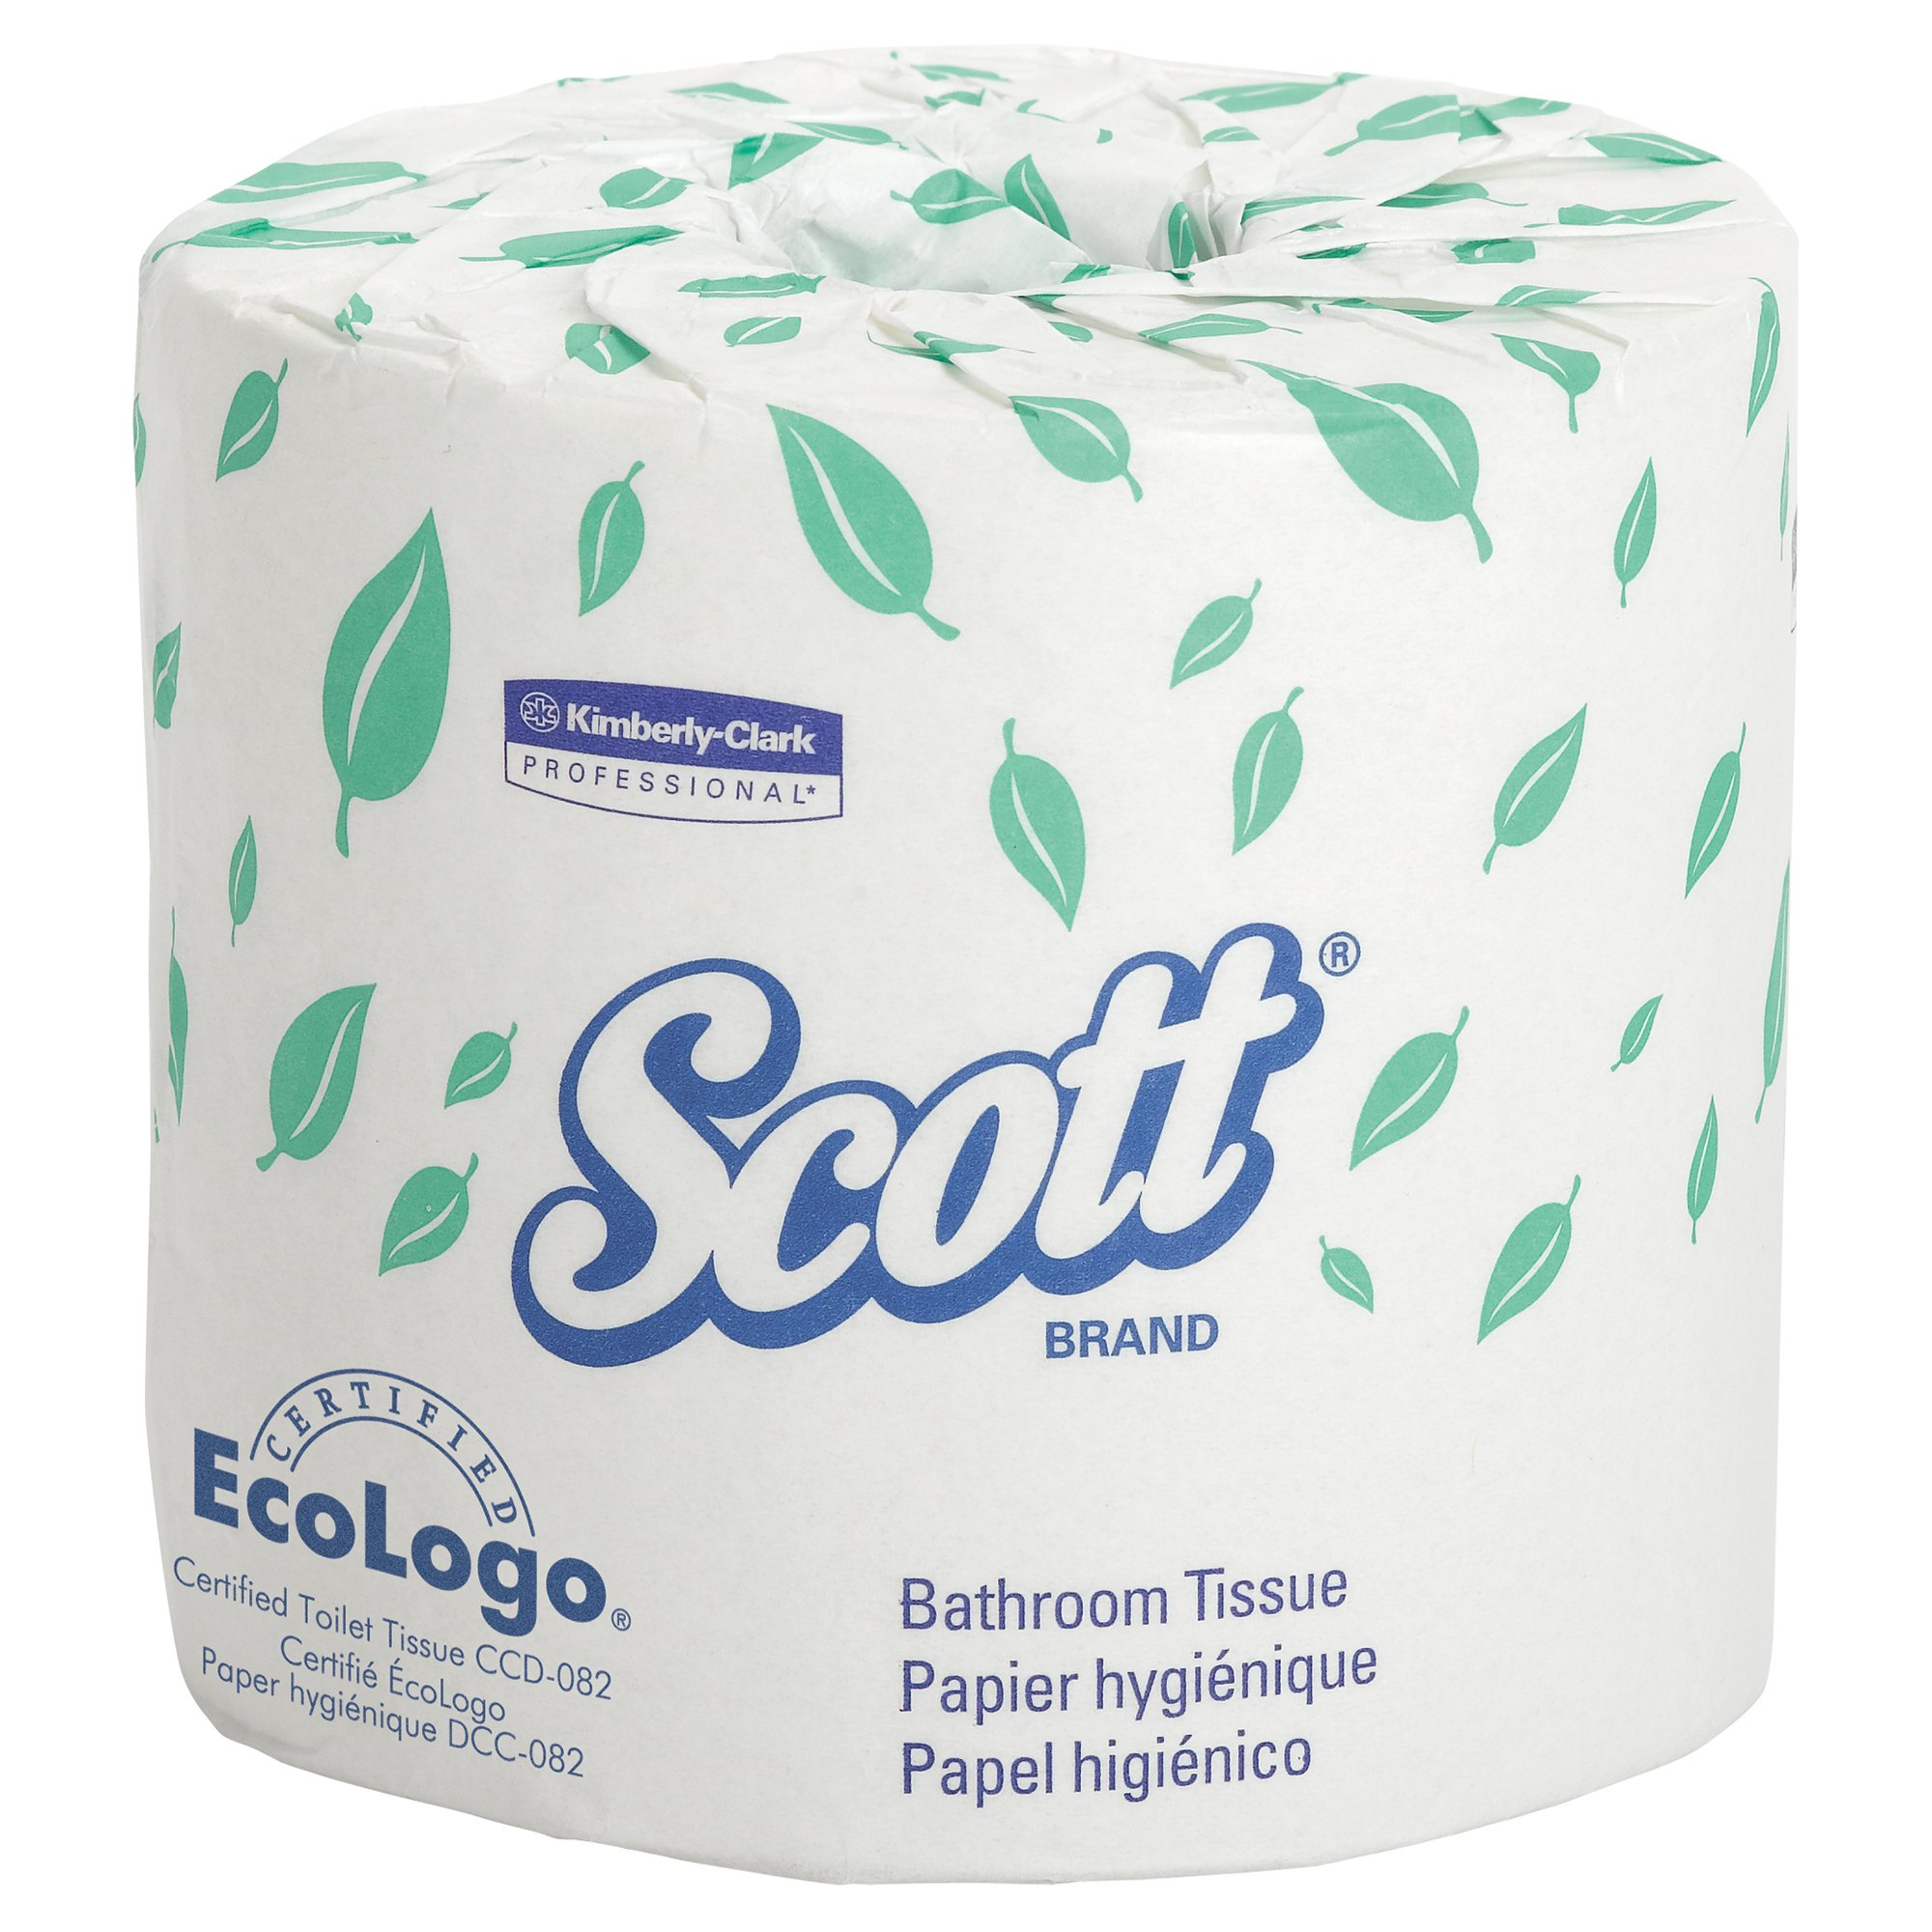 Scott Essential Professional Bulk Toilet Paper for Business (04460), Individually Wrapped Standard Rolls